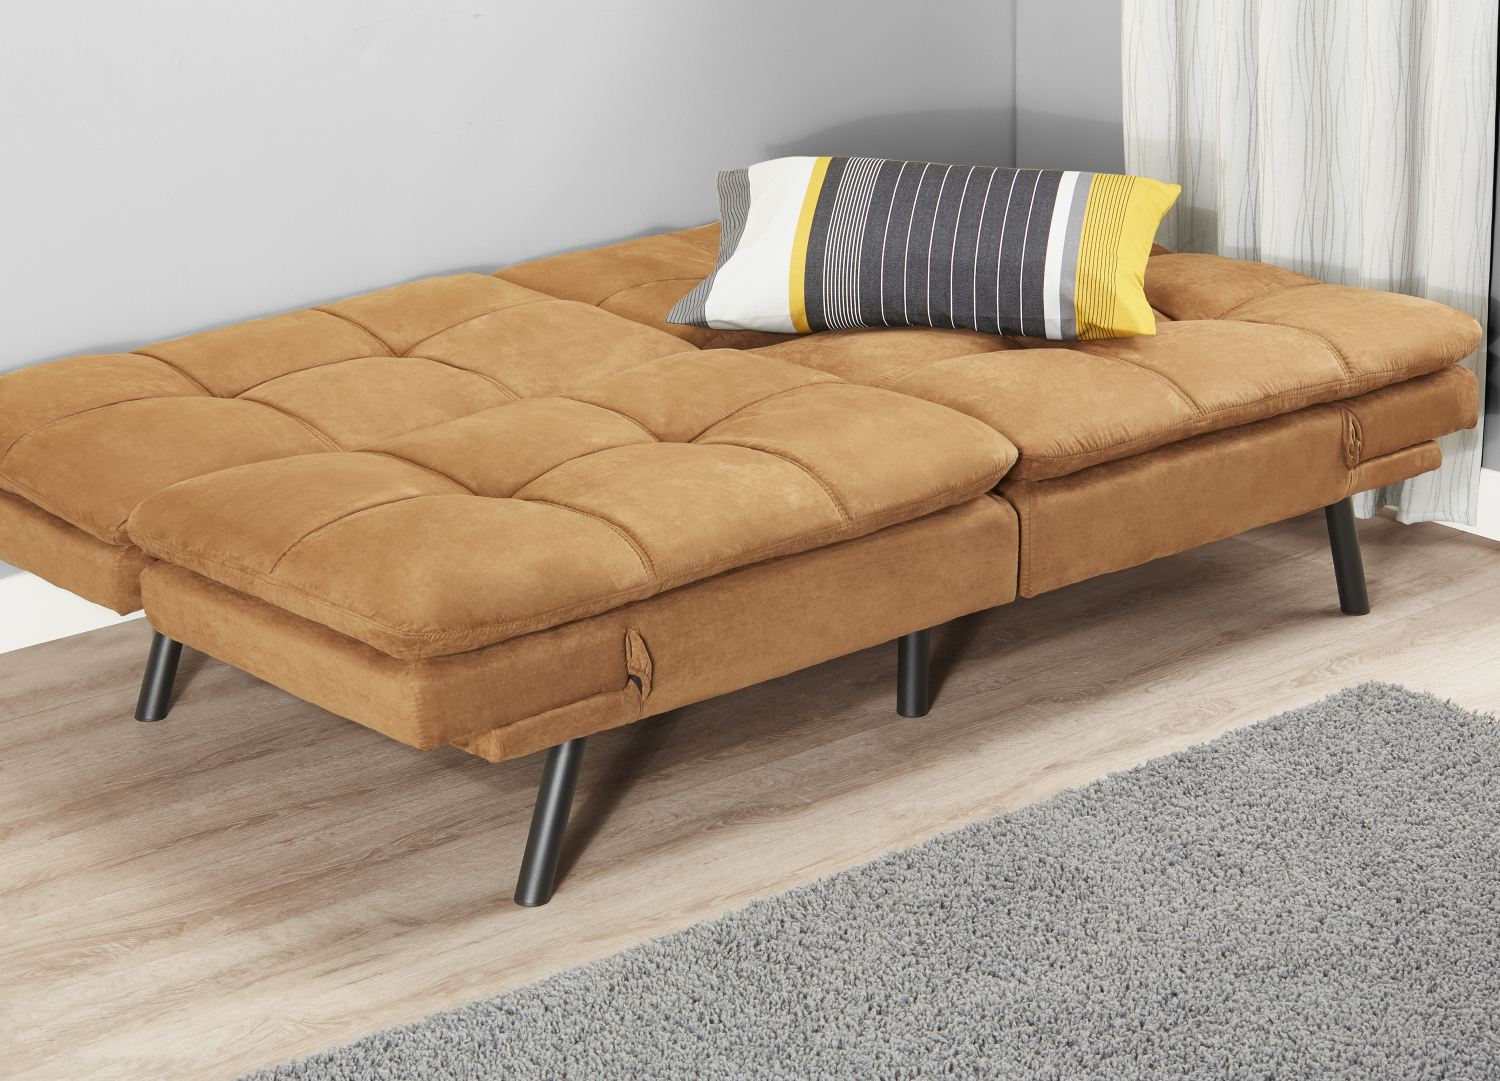 Sleeper Sofa Bed Black Suede Convertible Couch Modern ...